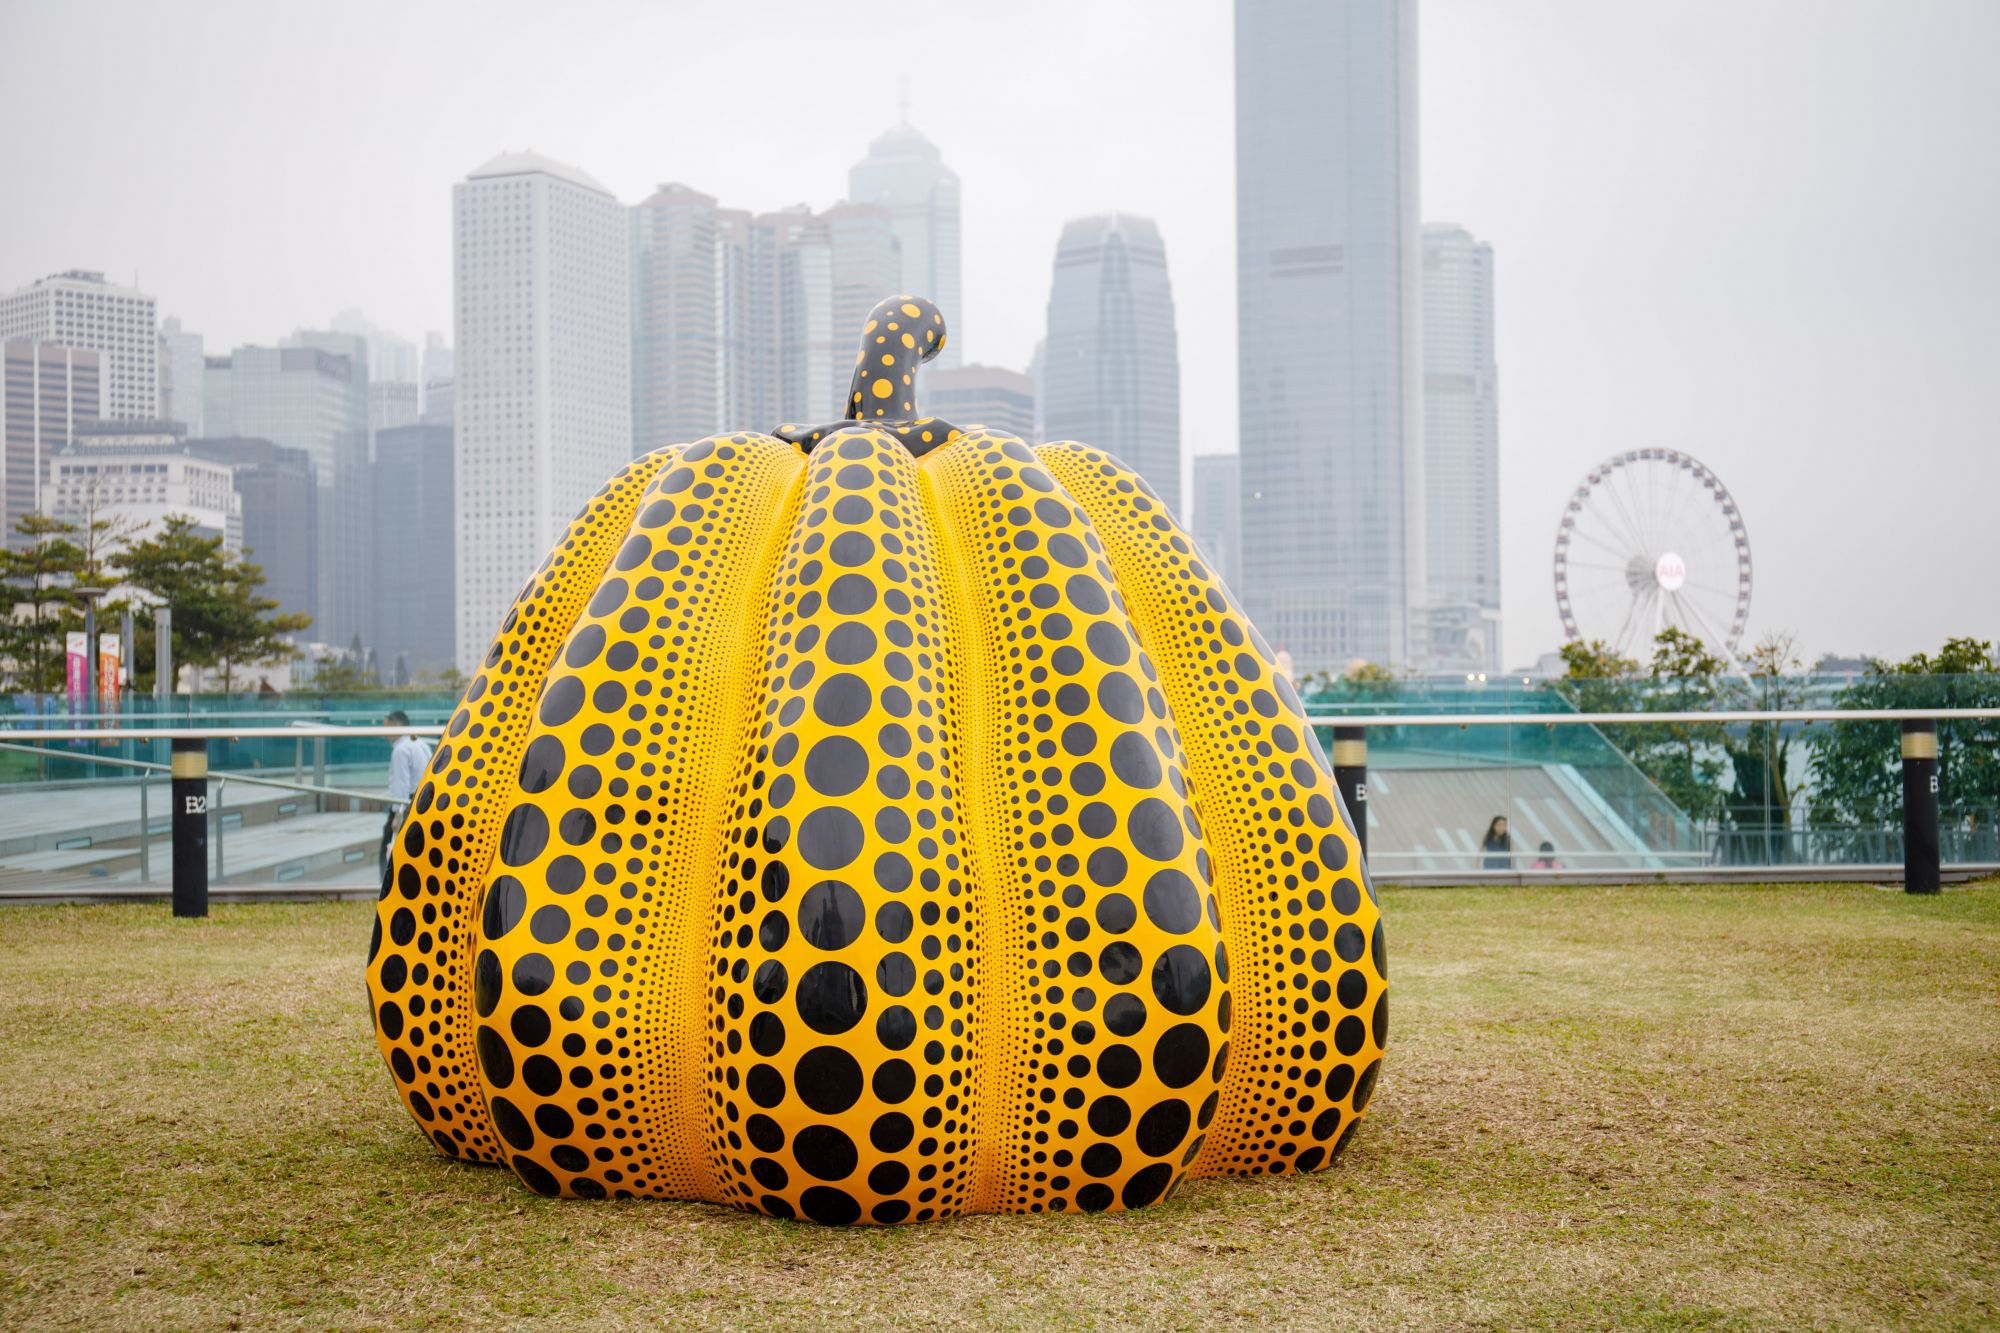 First Look: Inside Hong Kong's First International Sculpture Park